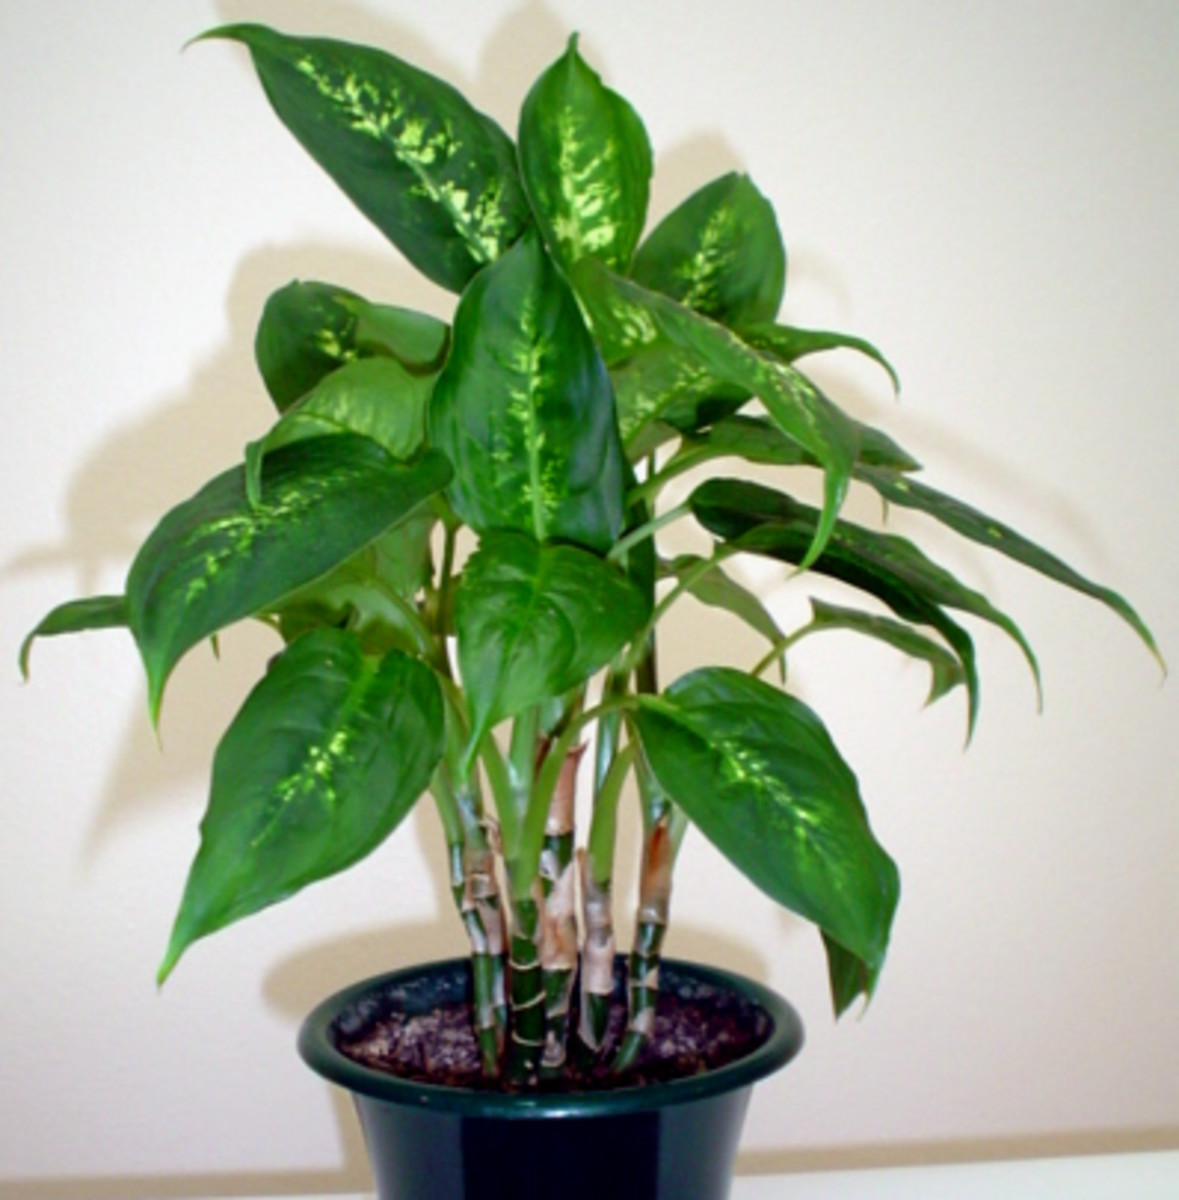 A Commonly Planted Specie of Dumb Cane